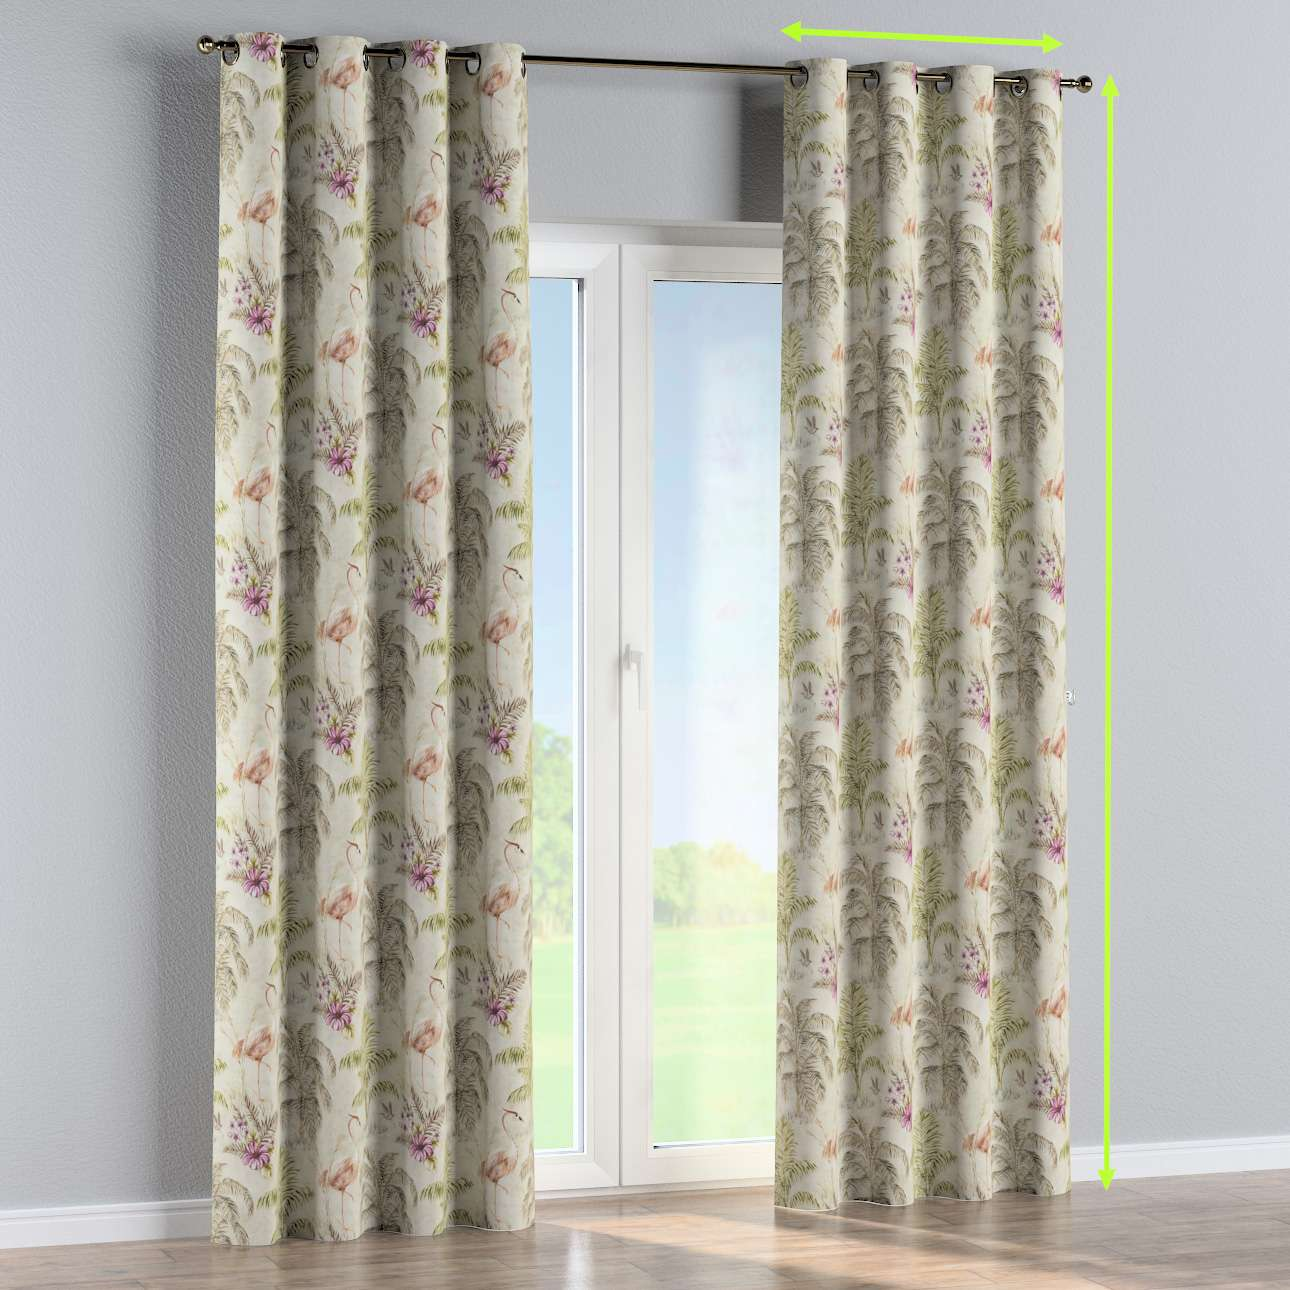 Eyelet curtain in collection SALE, fabric: 142-61